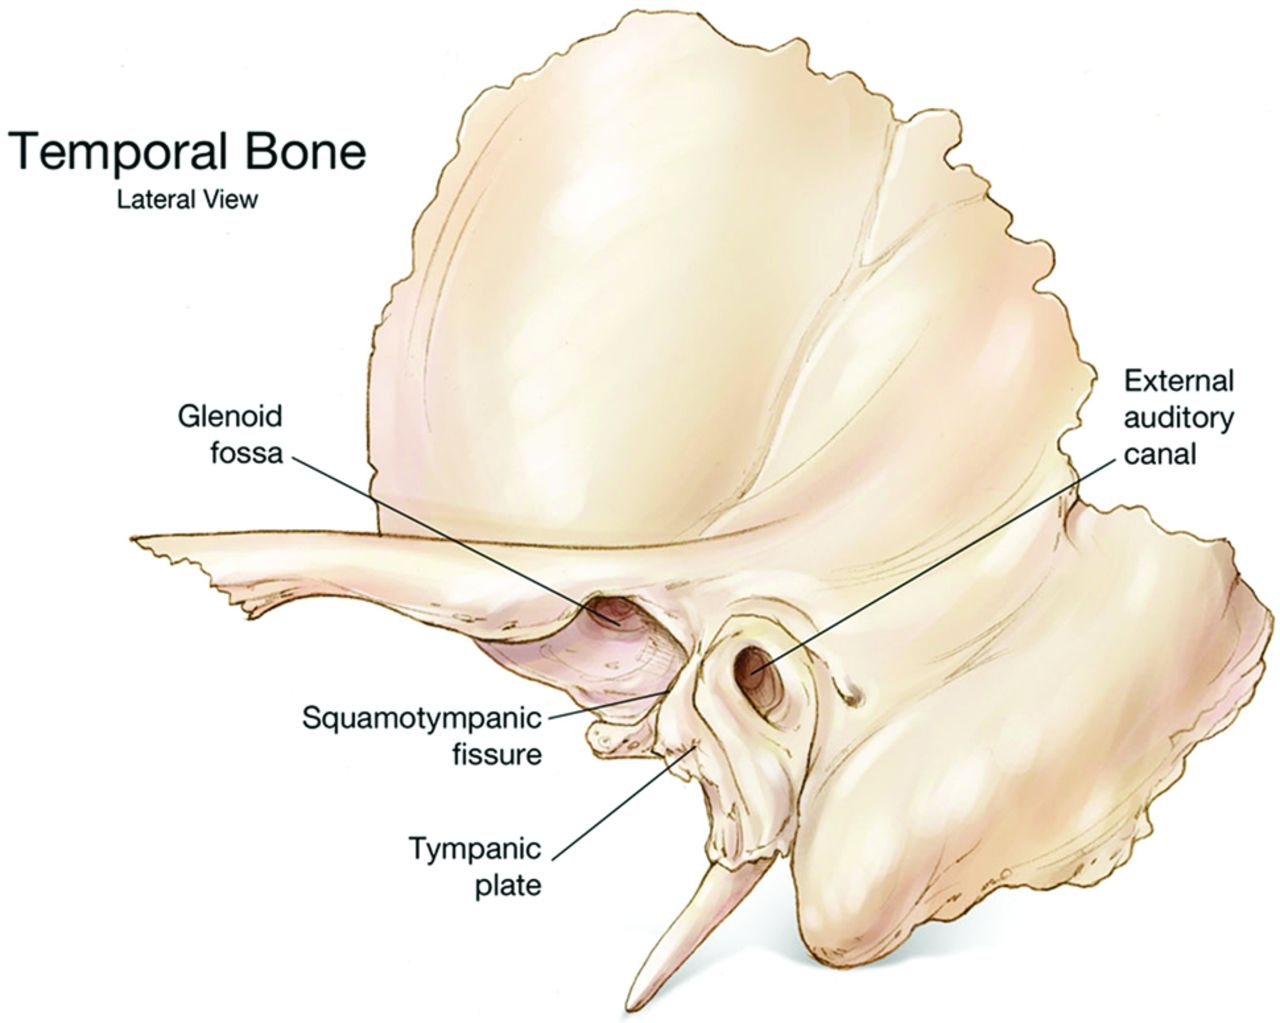 tympanic plate fractures in temporal bone trauma: prevalence and, Human Body